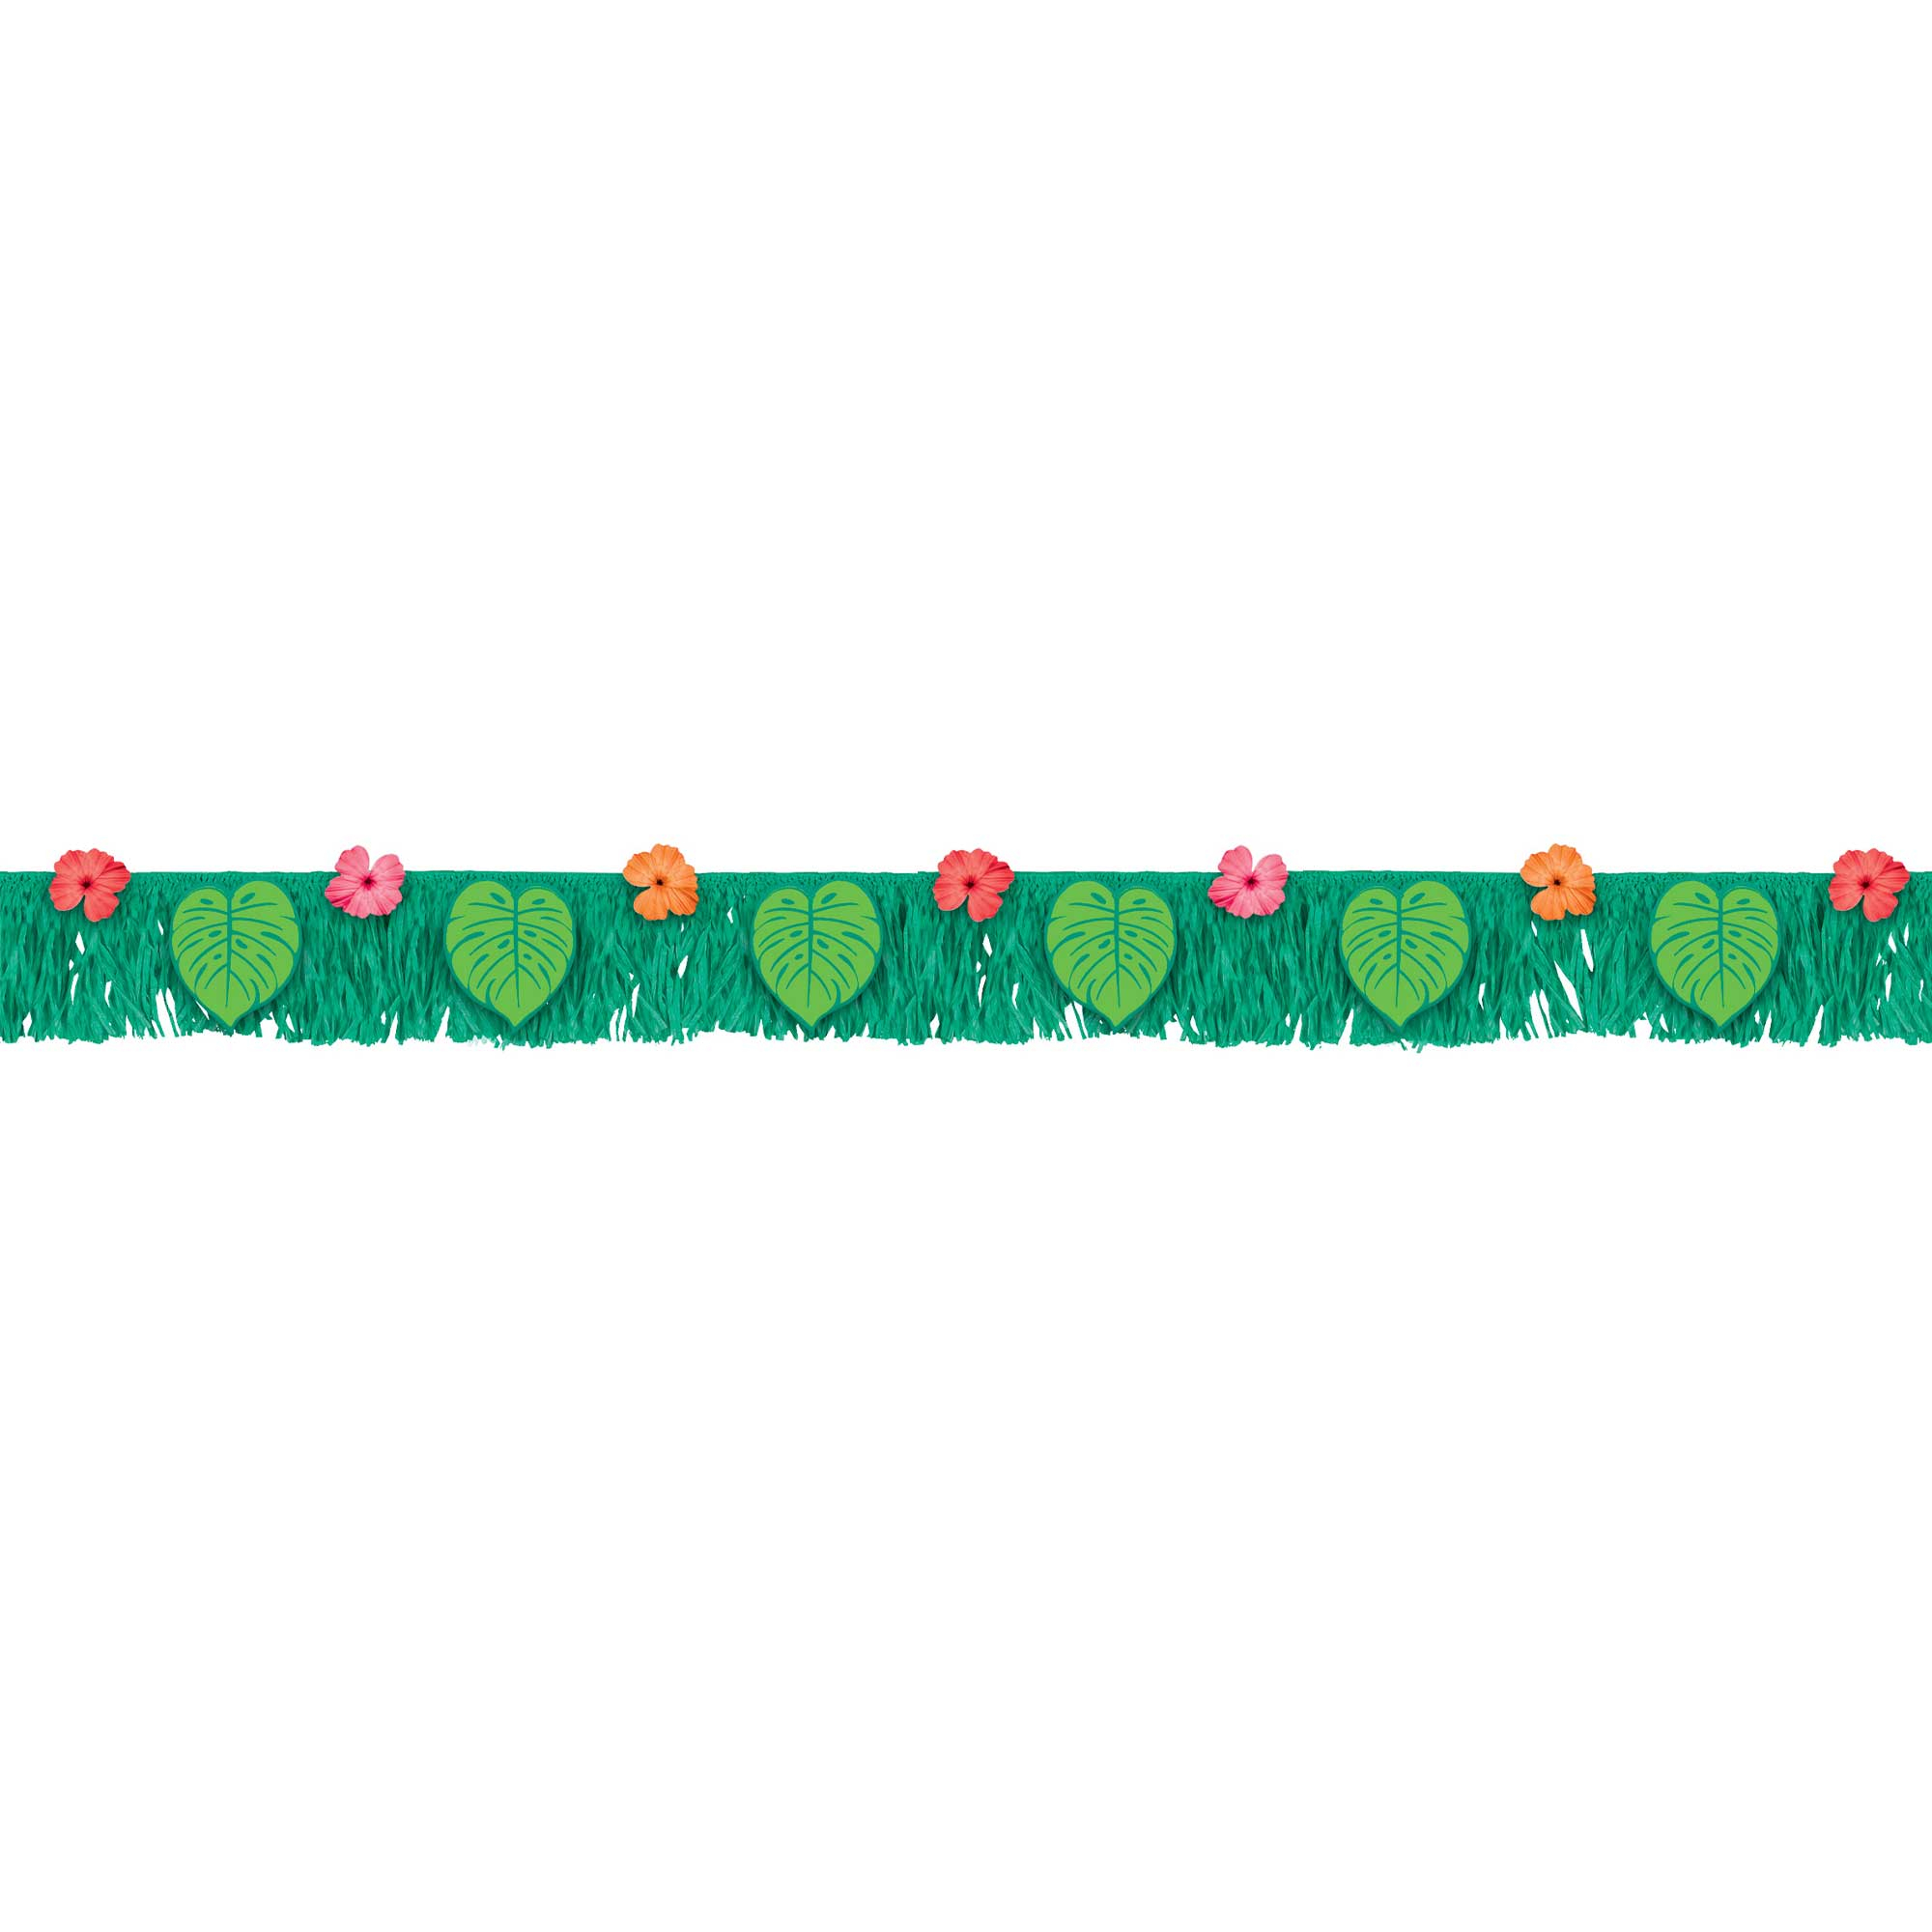 Tropical Jungle Fringe Banner with Palm Leaves & Flowers